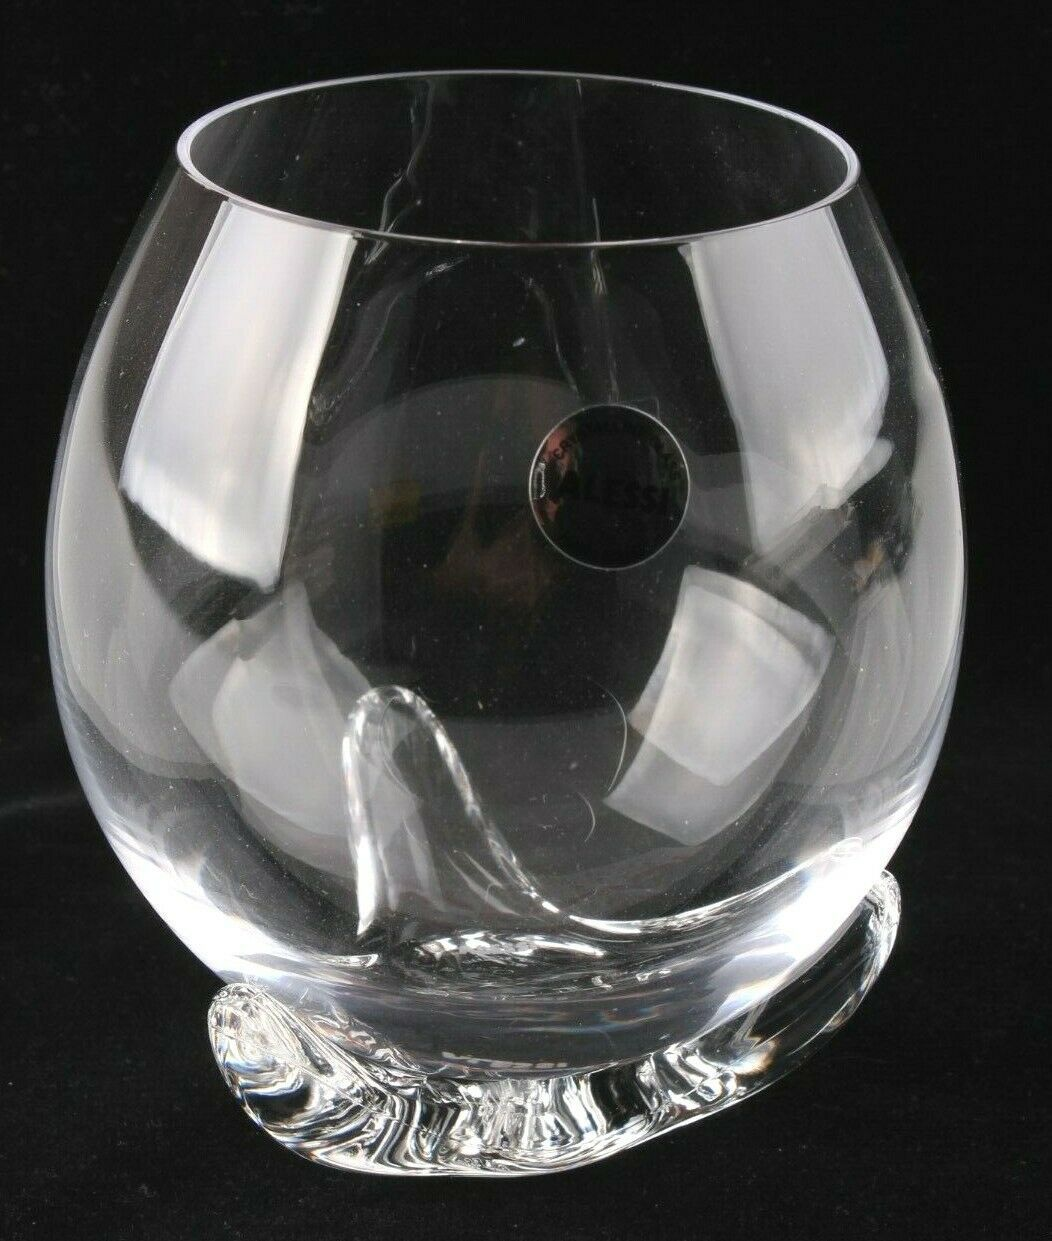 Lot of 2 Alessi Bettina Crystalline White Wine or Water Glasses w PMMA Support